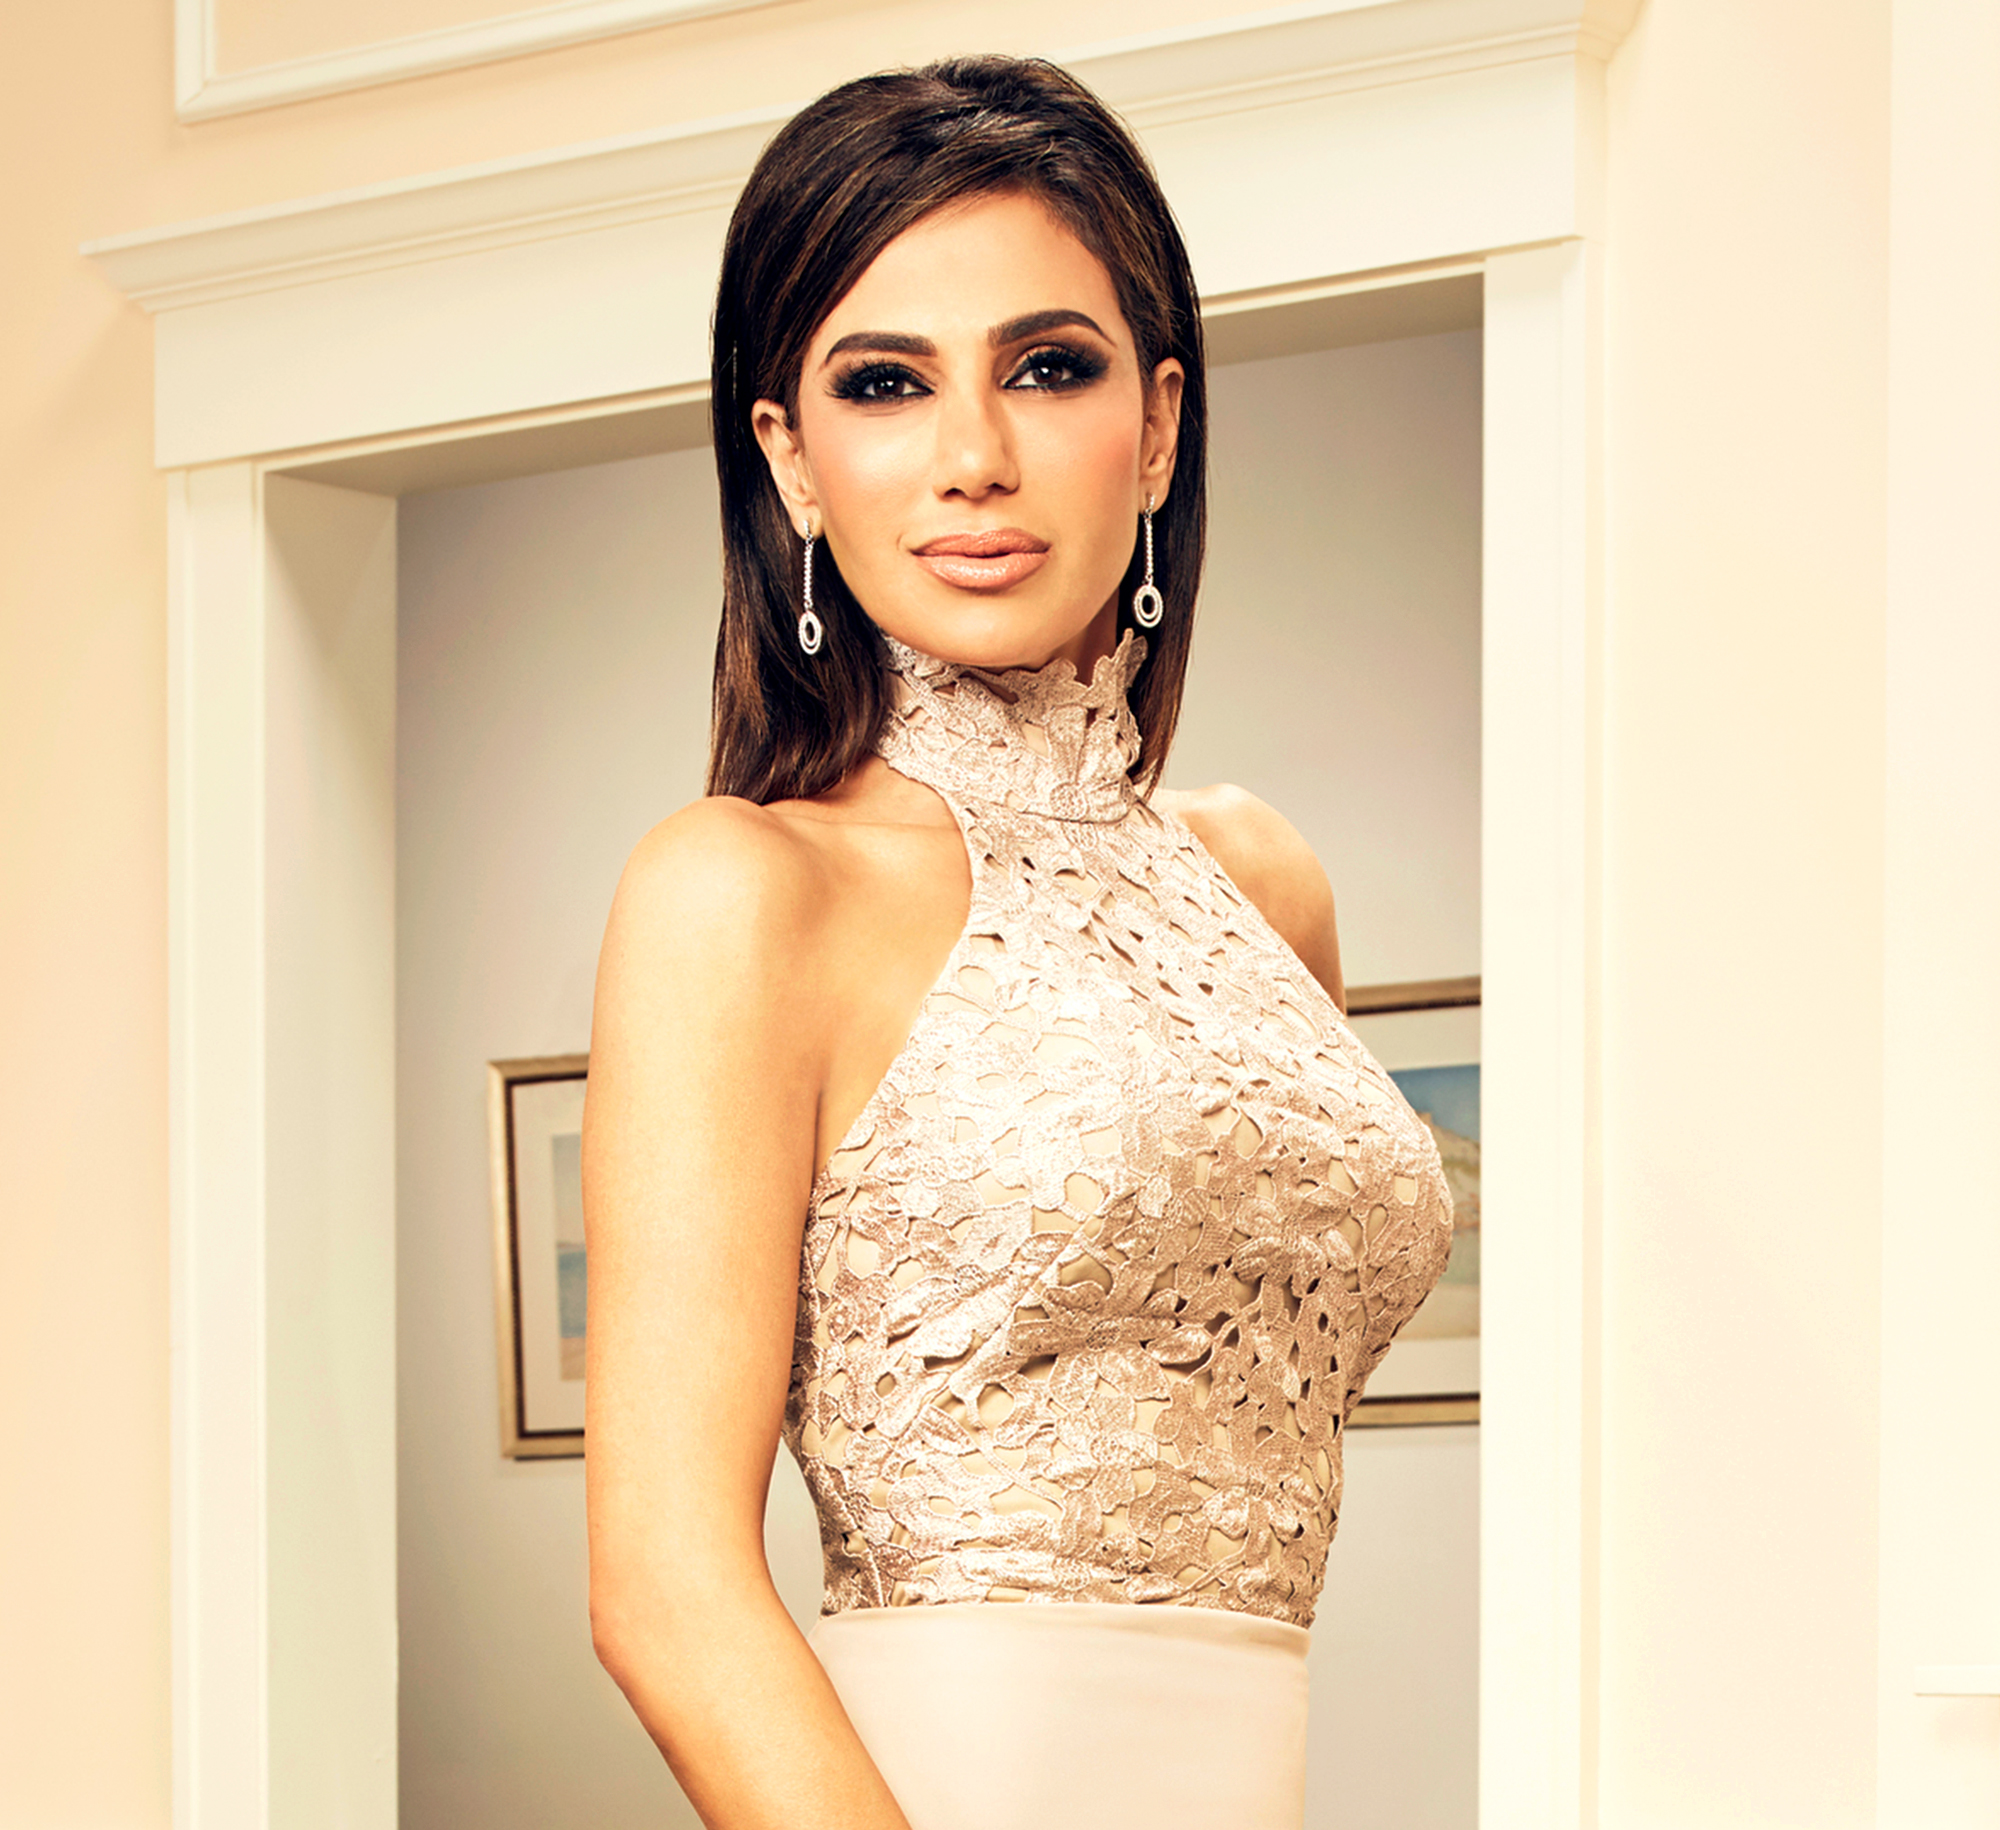 Real Housewives of Orange County star Peggy Sulahian